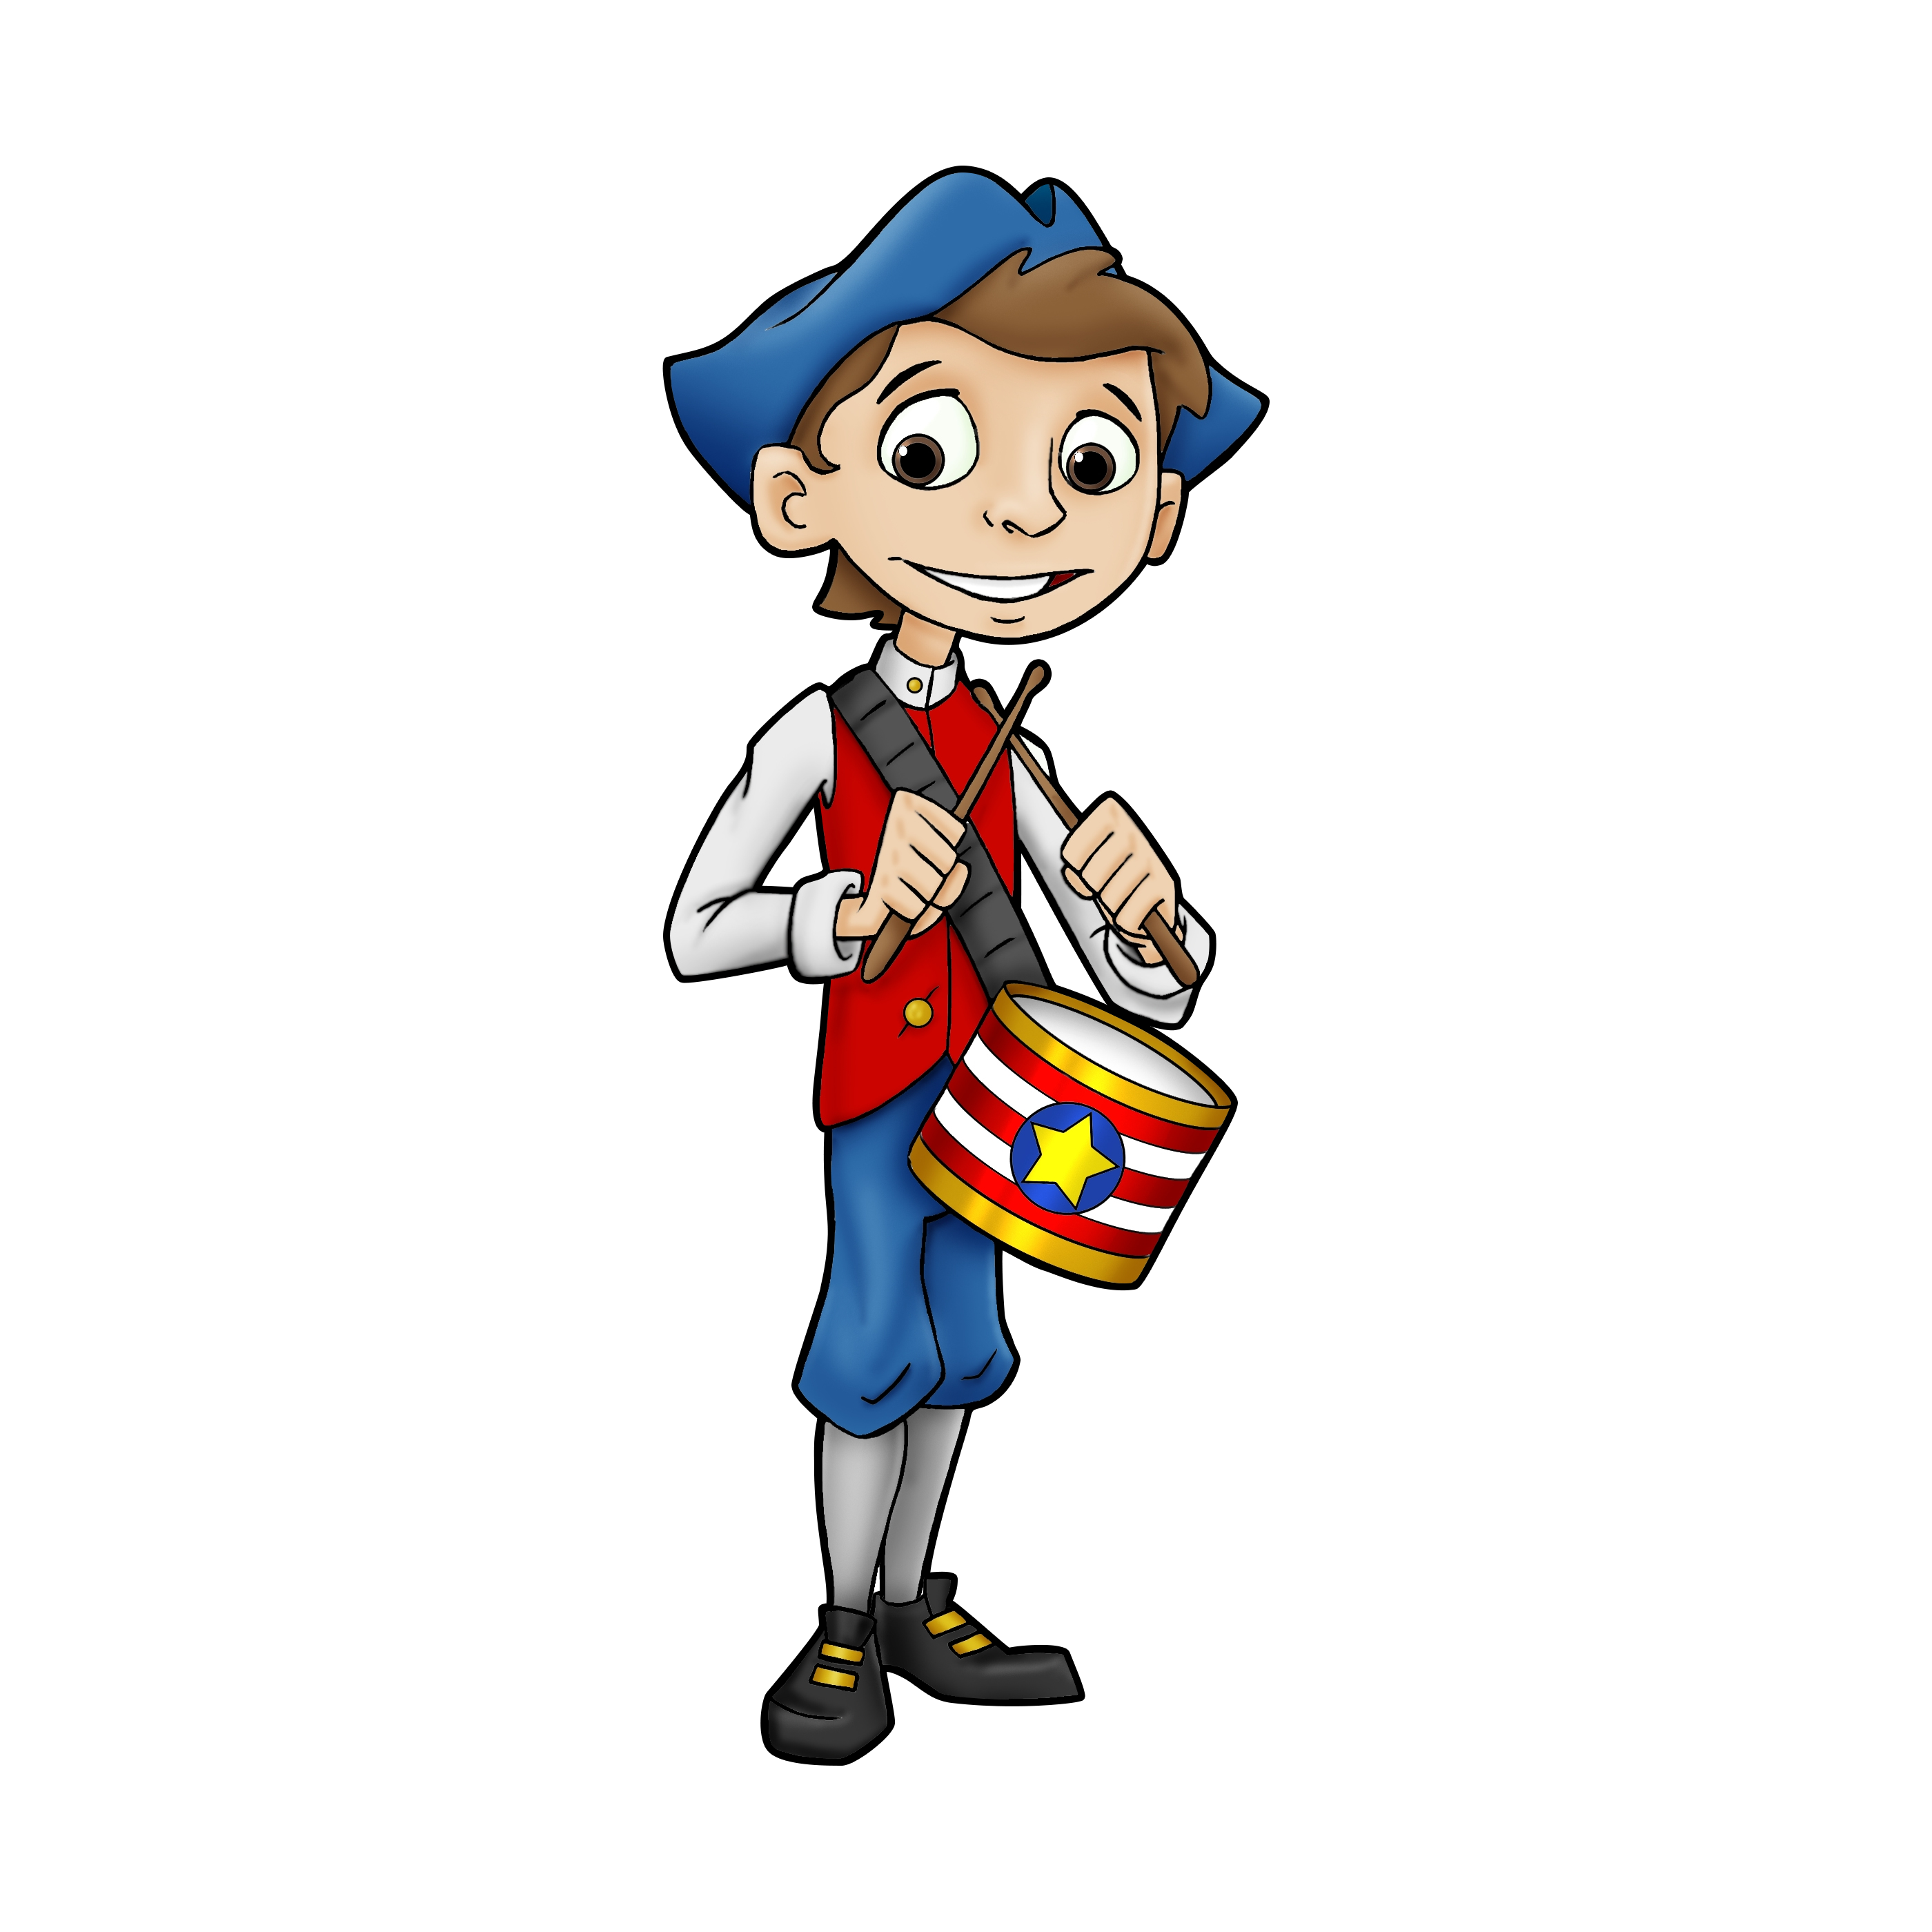 Explorer clipart colonial person, Explorer colonial person.